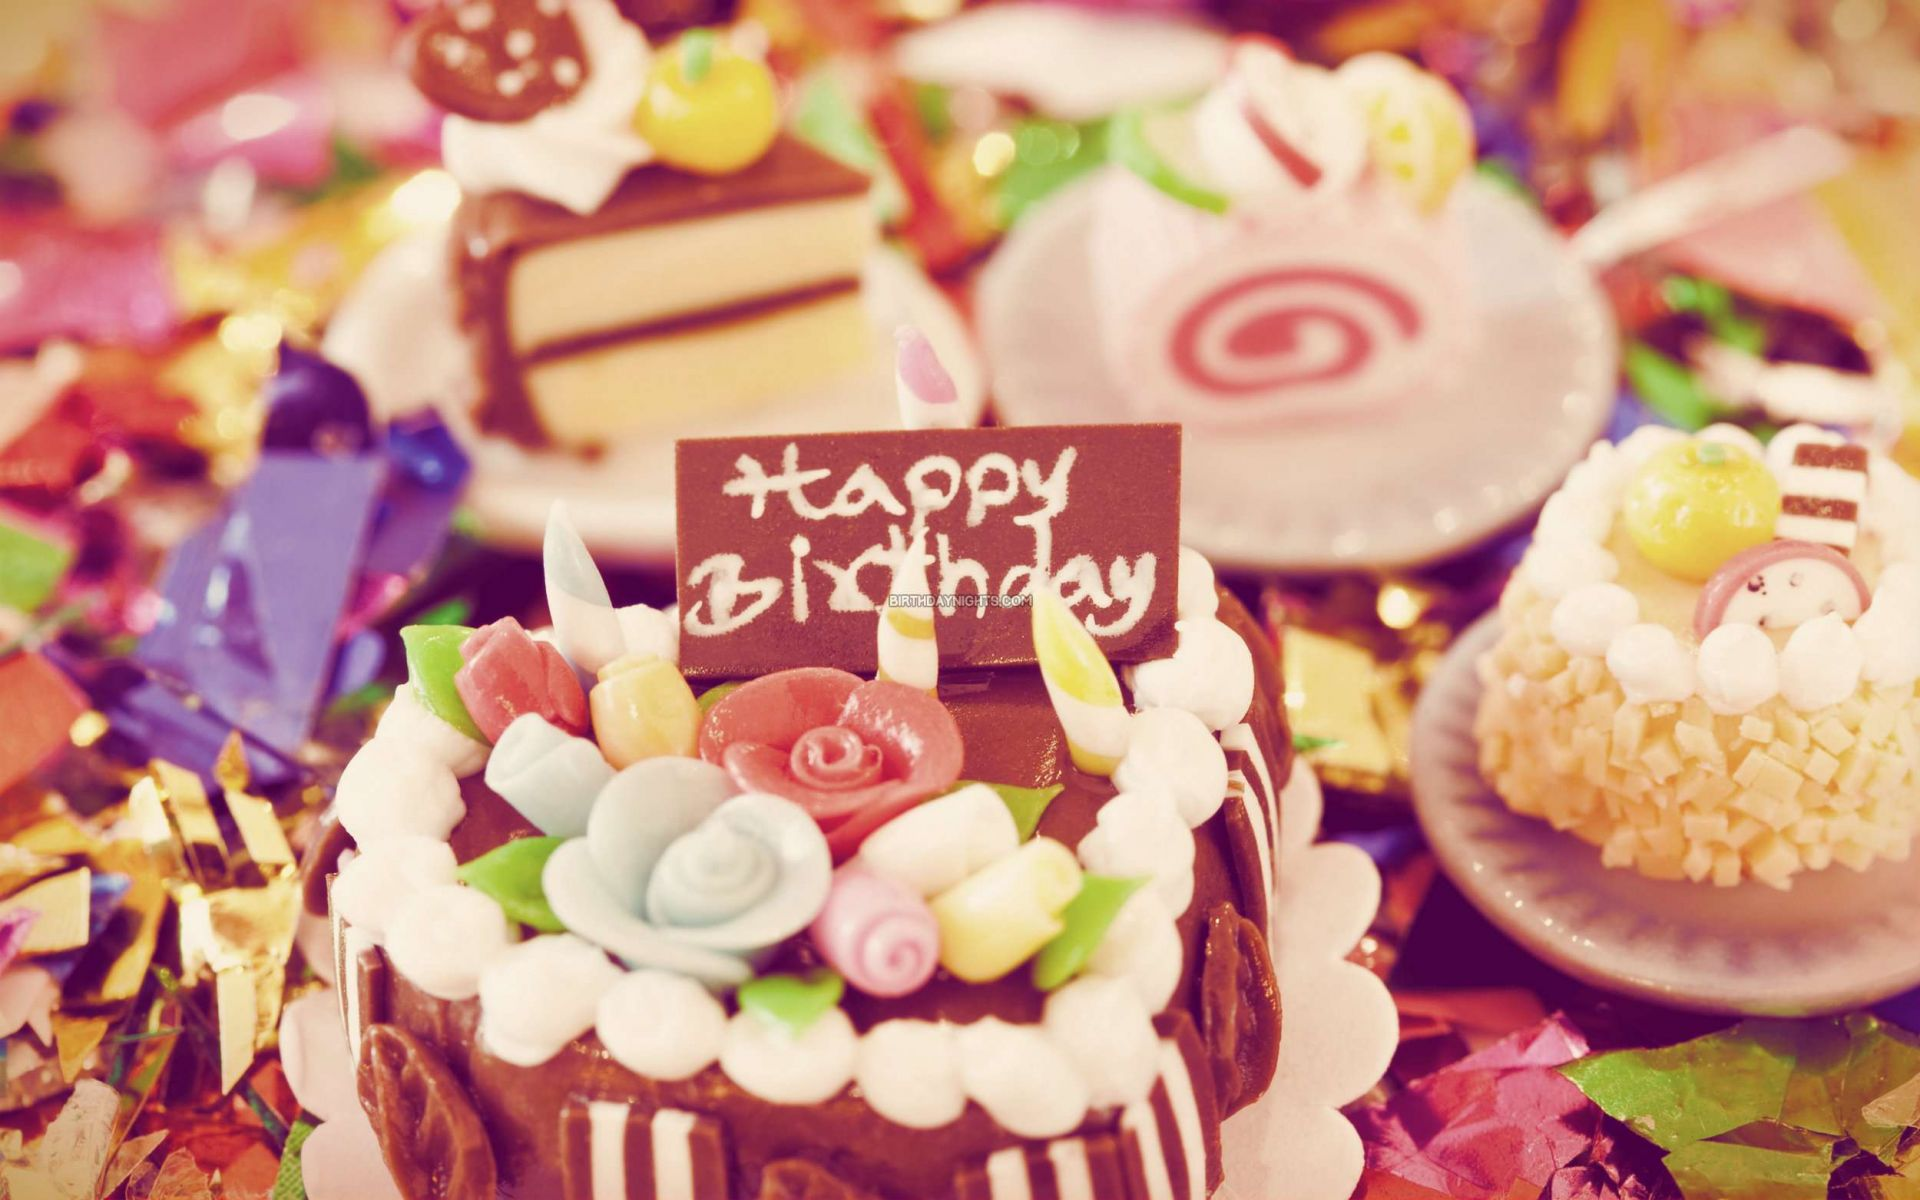 birthday wallpaper free download for mobile ; happy-birthday-cake-pictures-with-candle-wallpapers